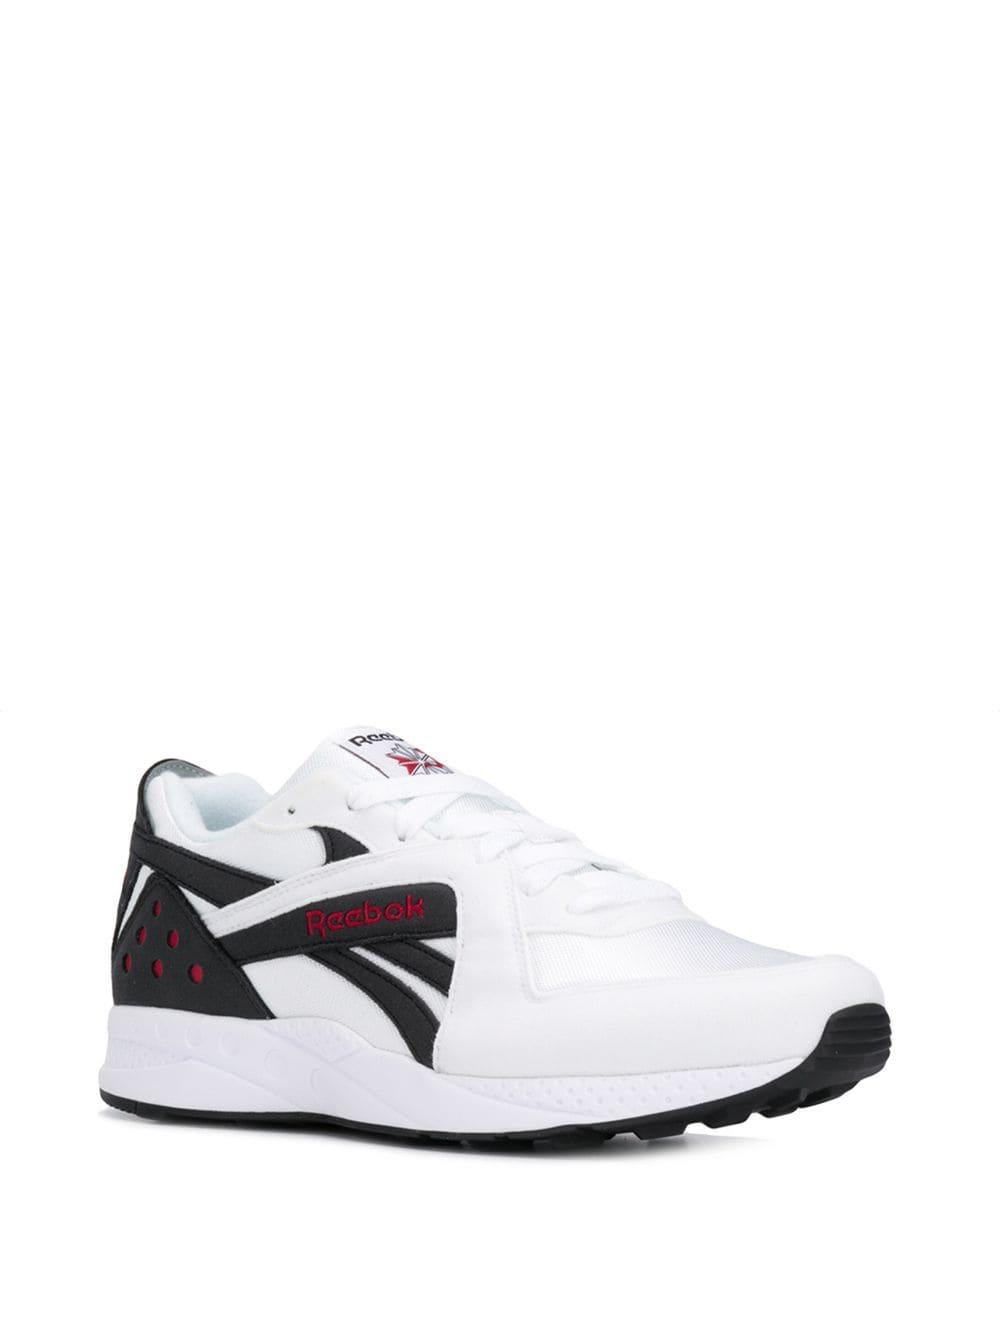 b55807f85 Lyst - Reebok Pyro Sneakers in White for Men